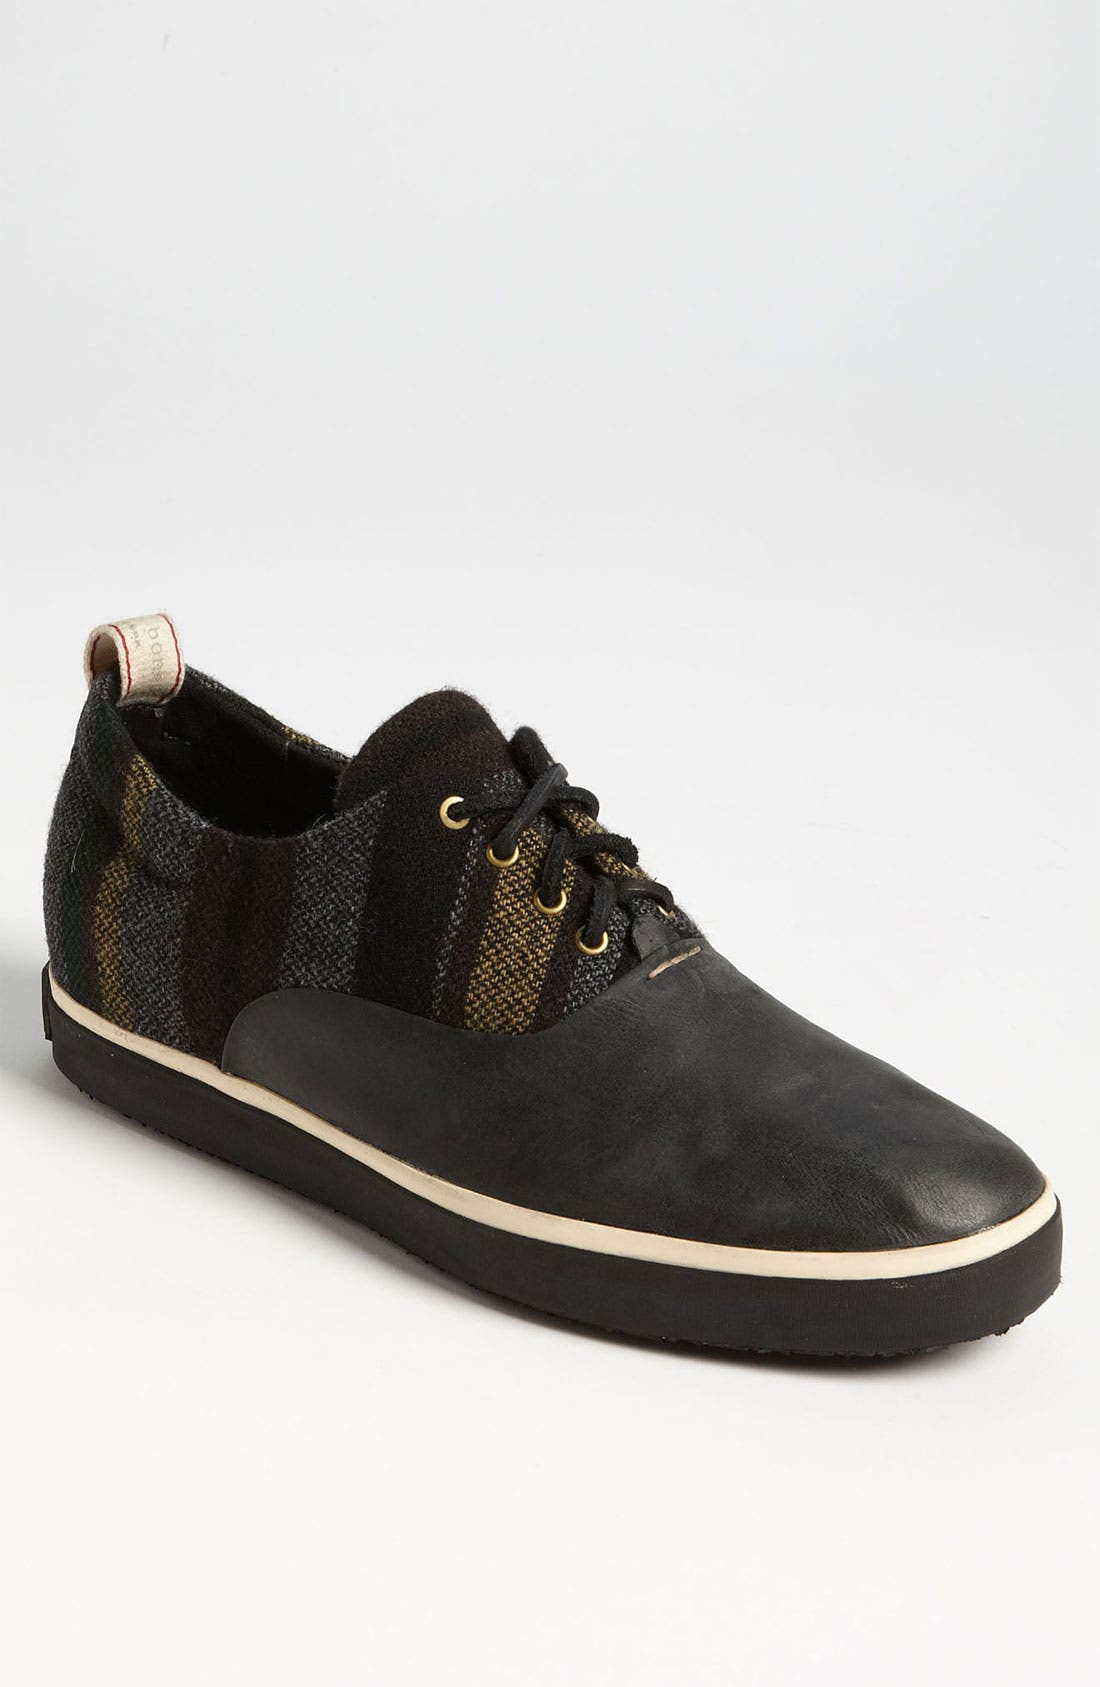 Main Image - rag & bone 'Thompson' Sneaker